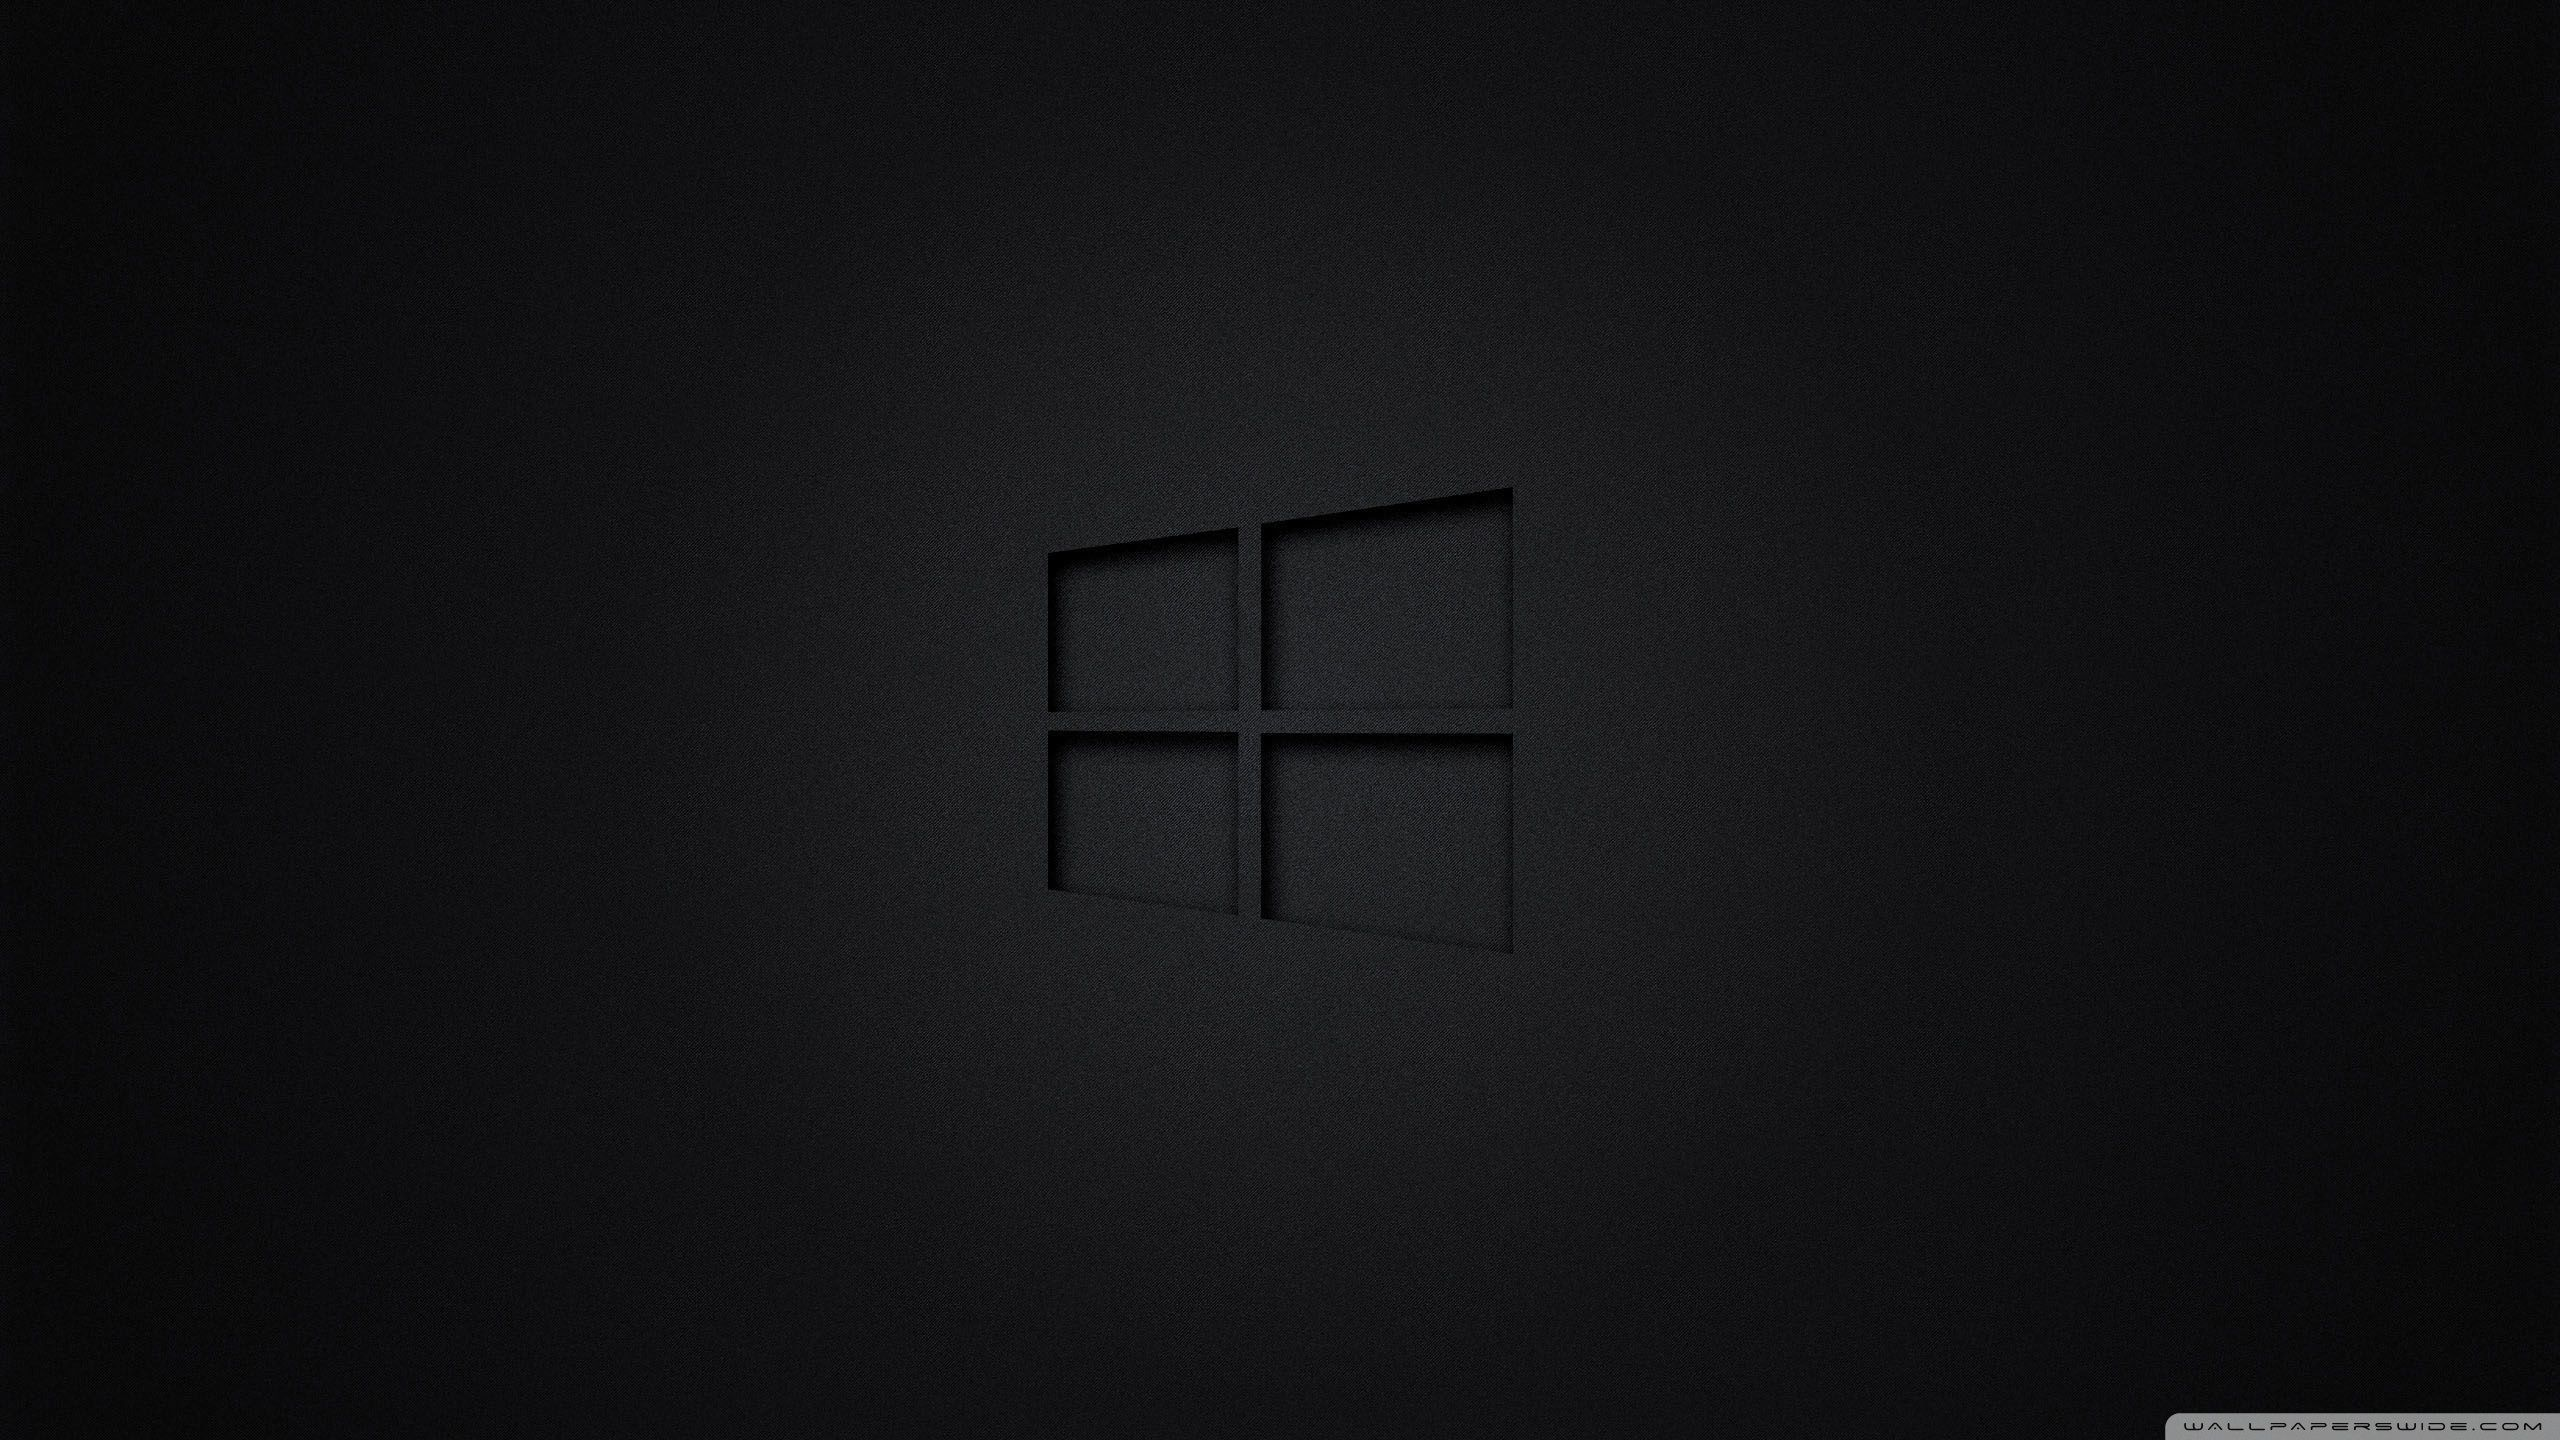 Black Windows Wallpapers Top Free Black Windows